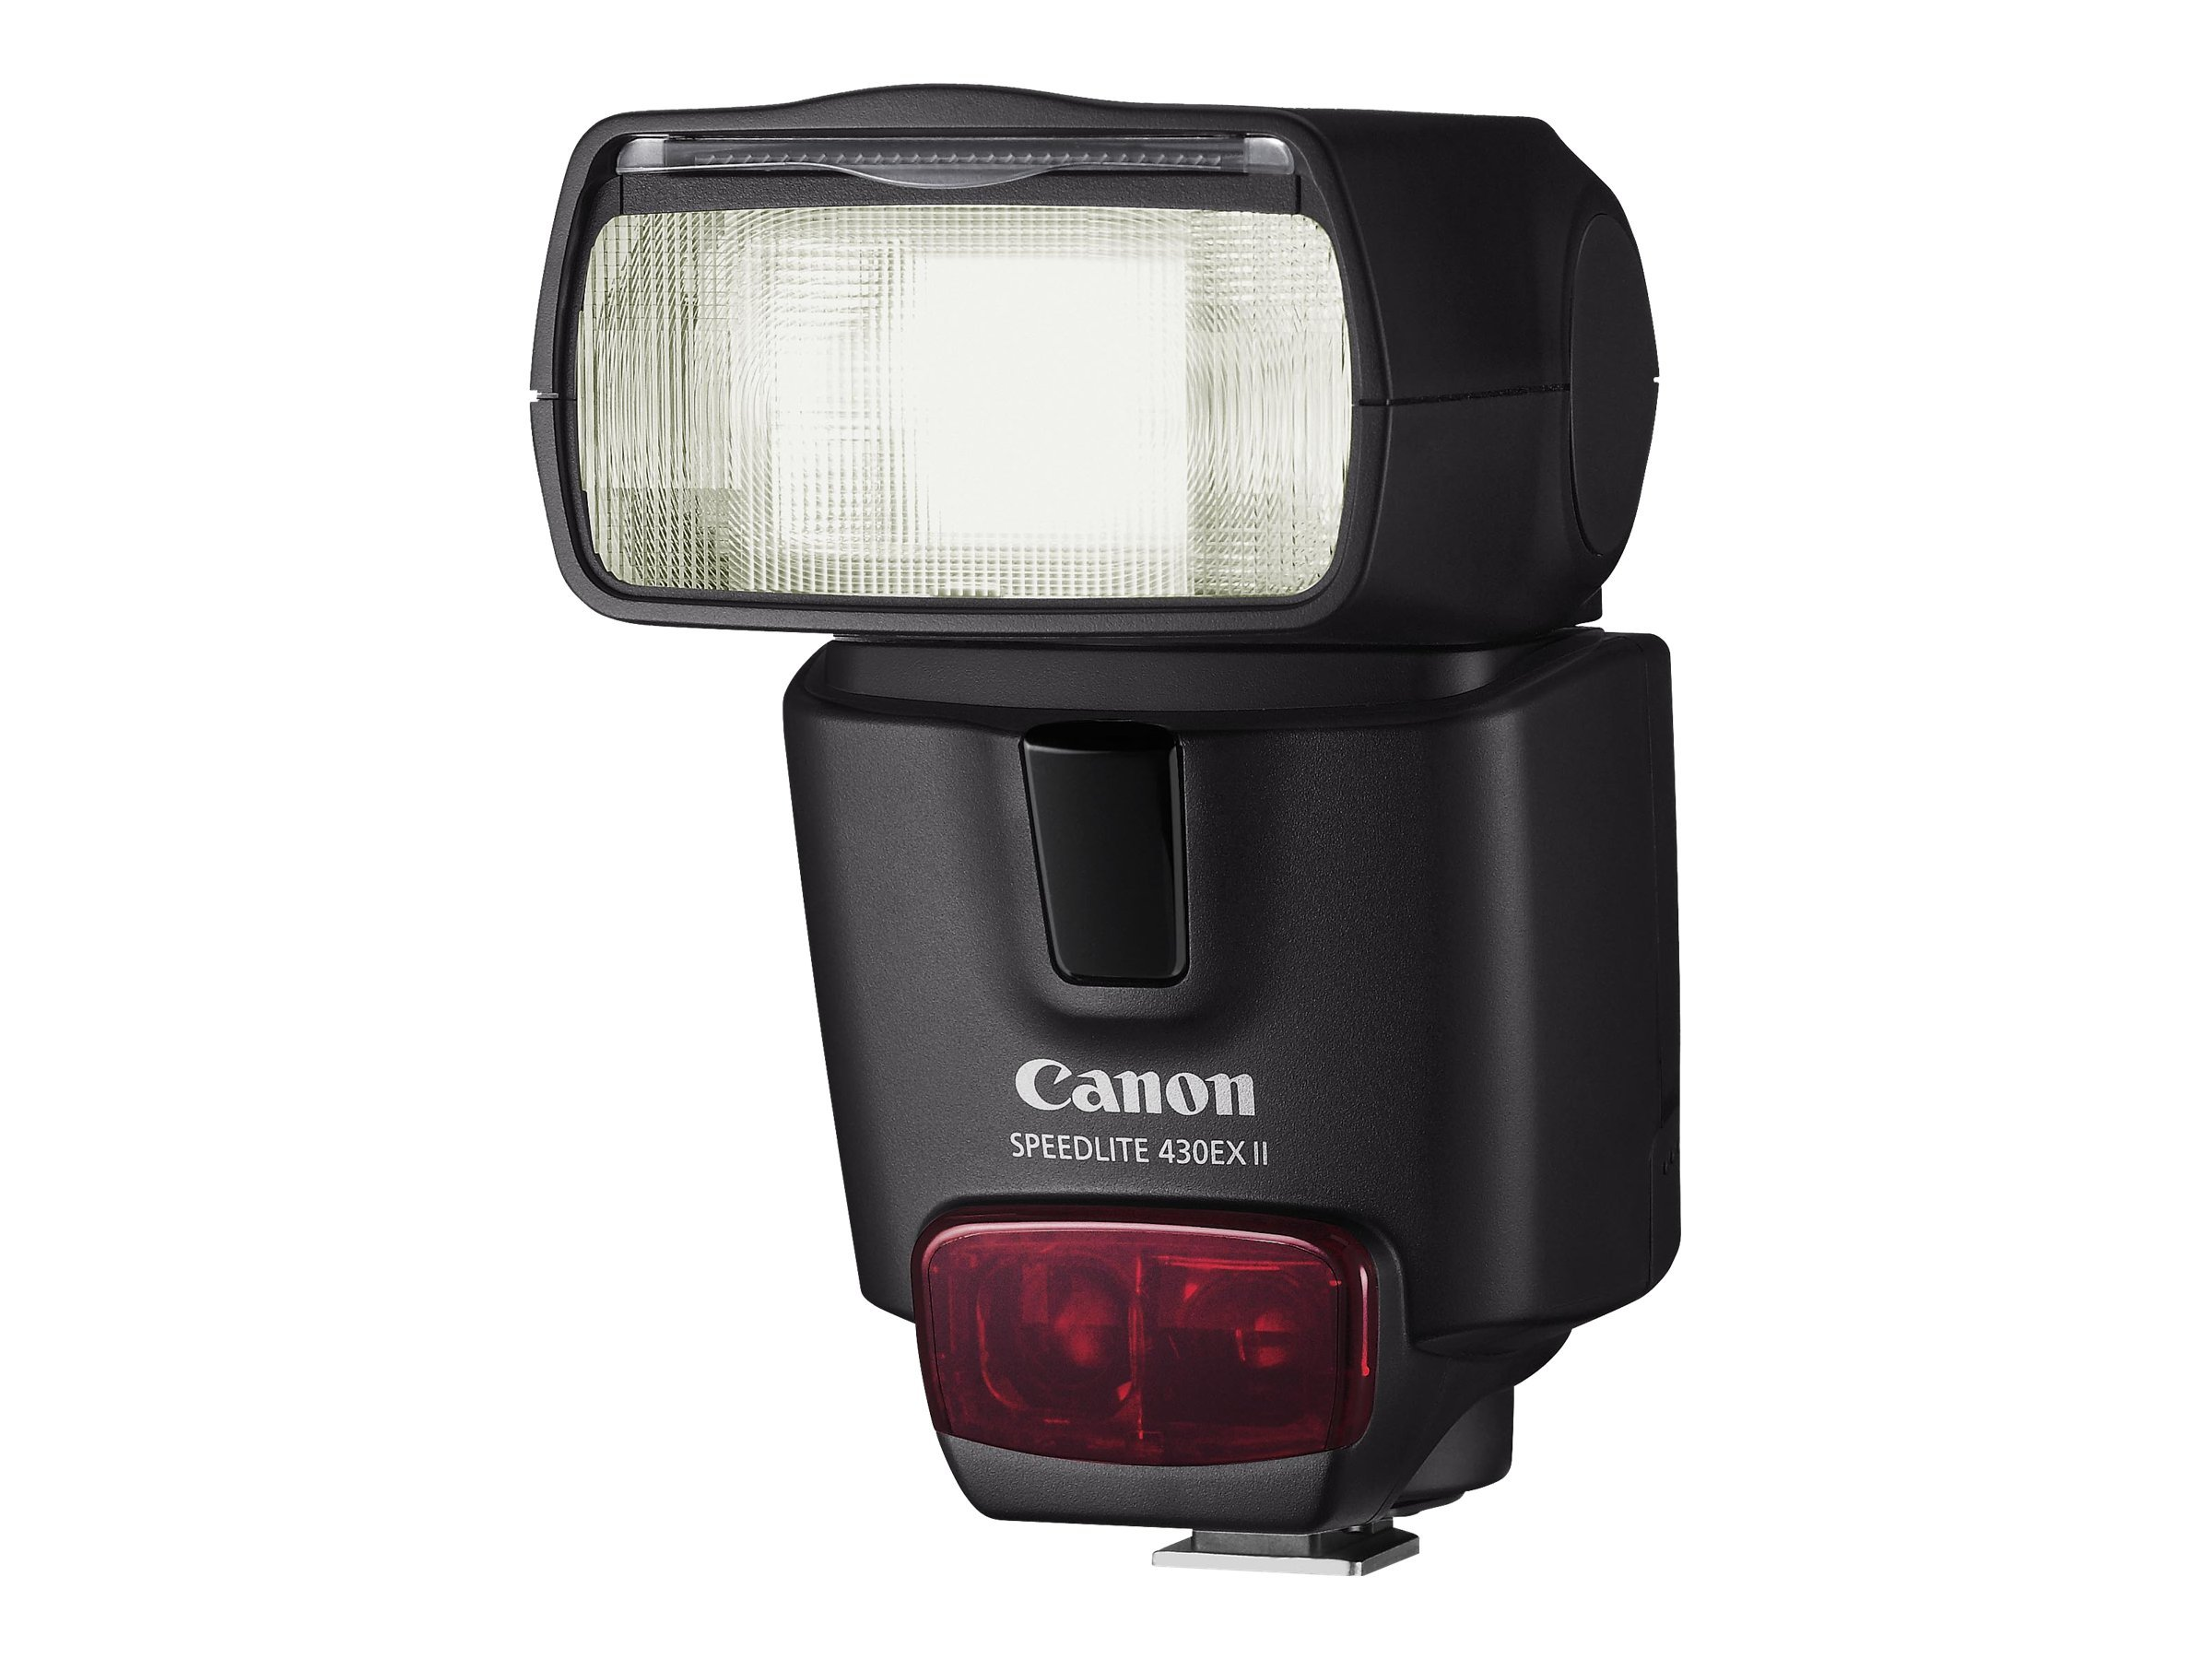 Canon Speedlite 430EX II, 2805B002, 9419174, Camera & Camcorder Accessories